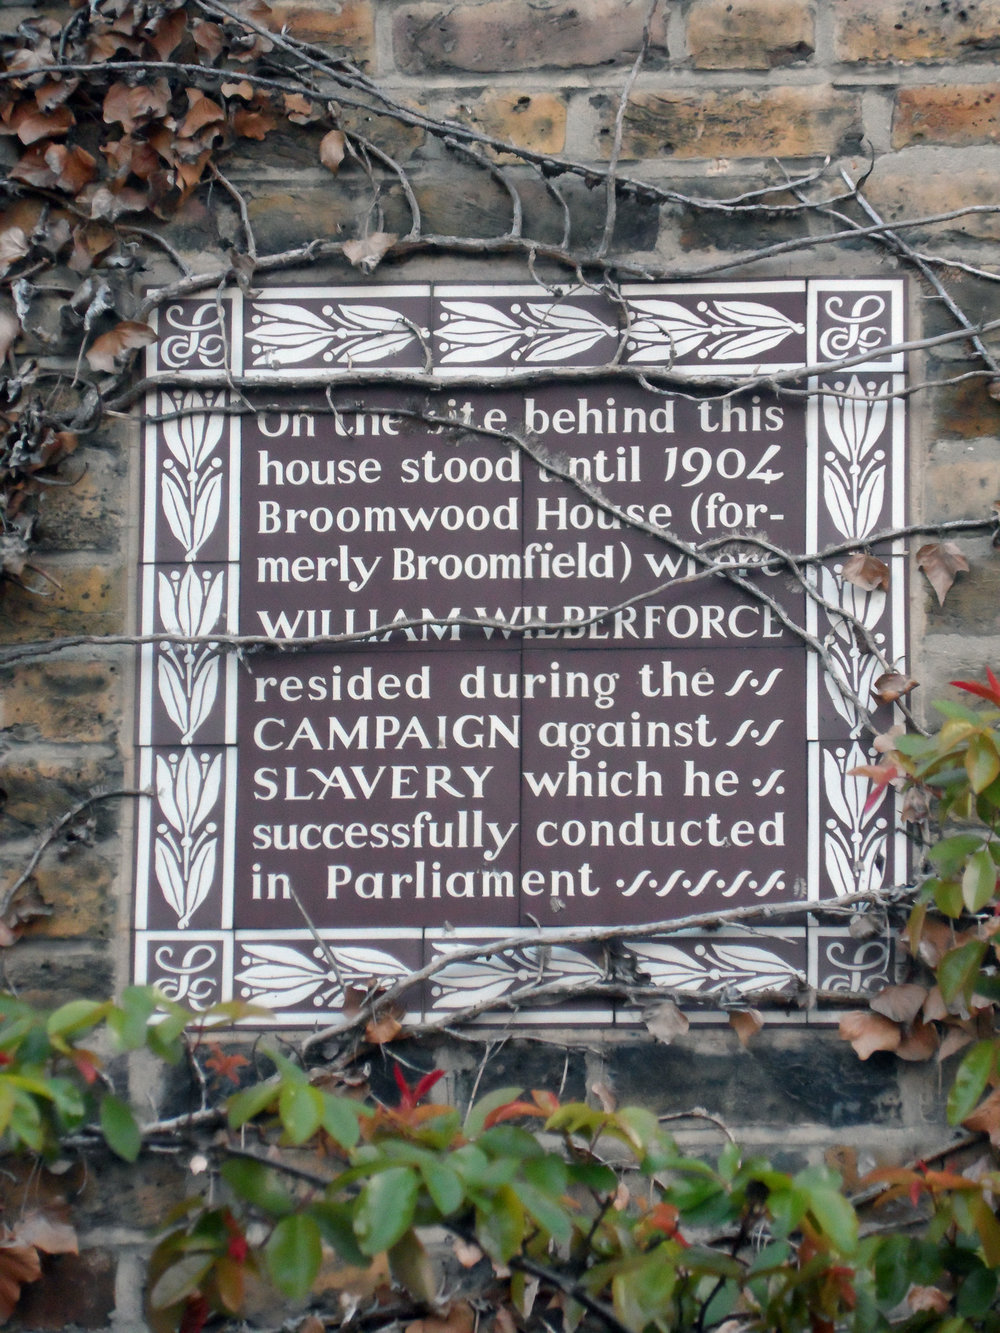 william wilberforce plaque.jpg